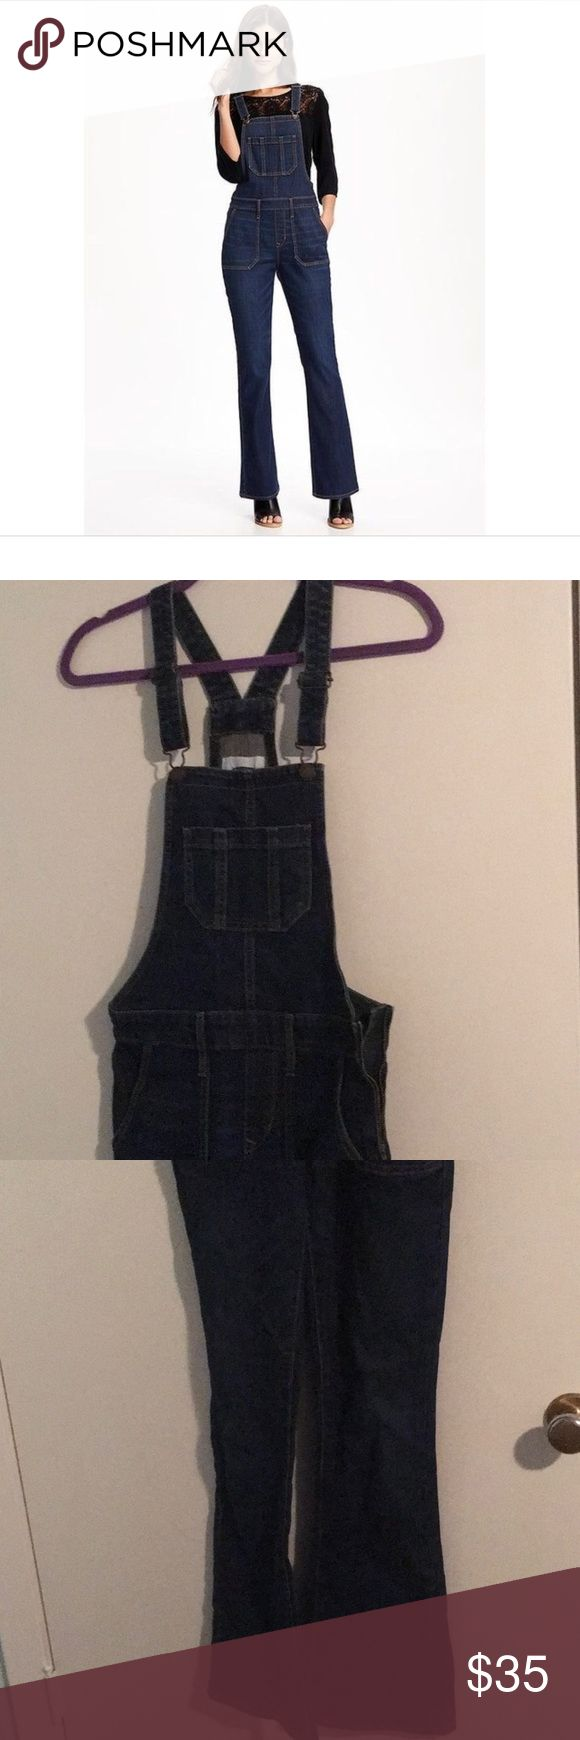 Old Navy Flare Overalls Old Navy Flare Overalls Size 0. I'm the second owner and I've only worn them once. Dark Wash, 30 inch inseam. Make an offer! Old Navy Jeans Overalls